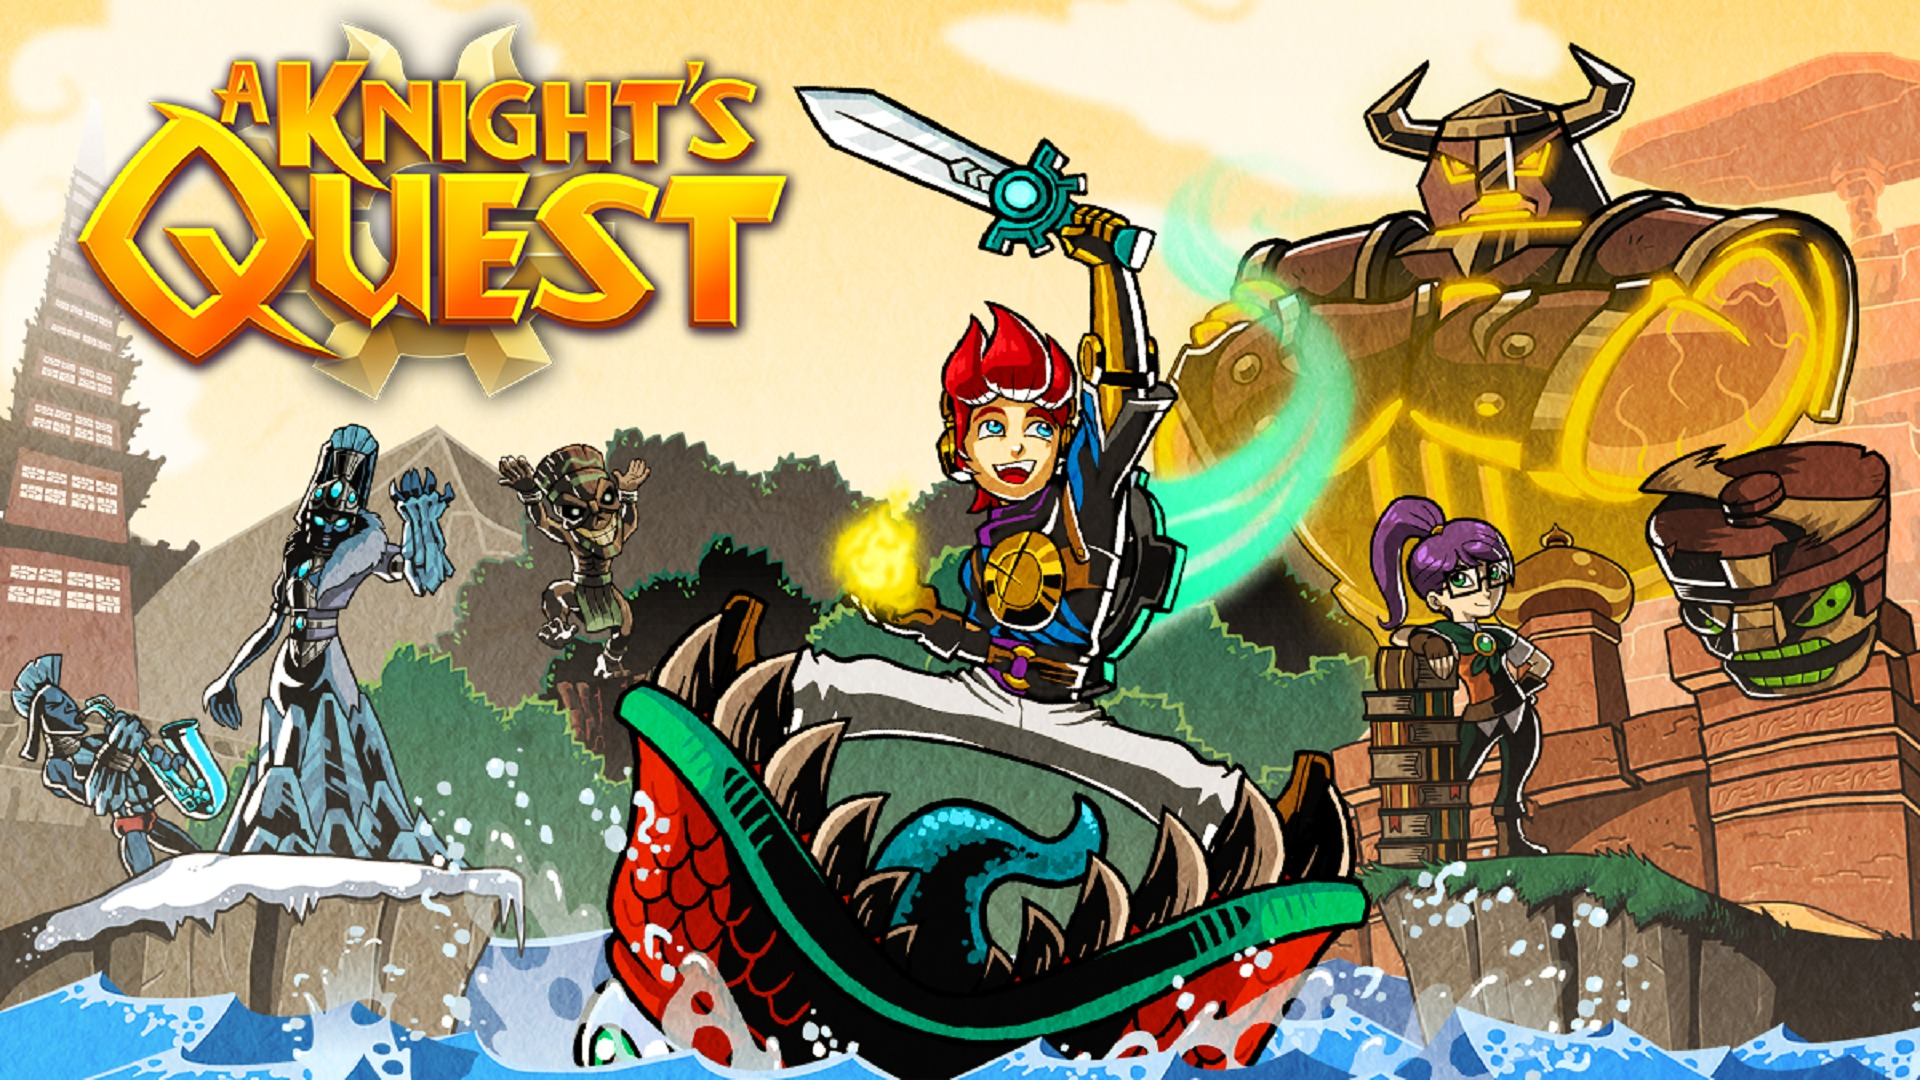 A Knight's Quest Is Coming To All Major Platforms In A New 3D Adventure, It Is Time To Go On A New Kind Of Quest To Save The Land Of Regalia